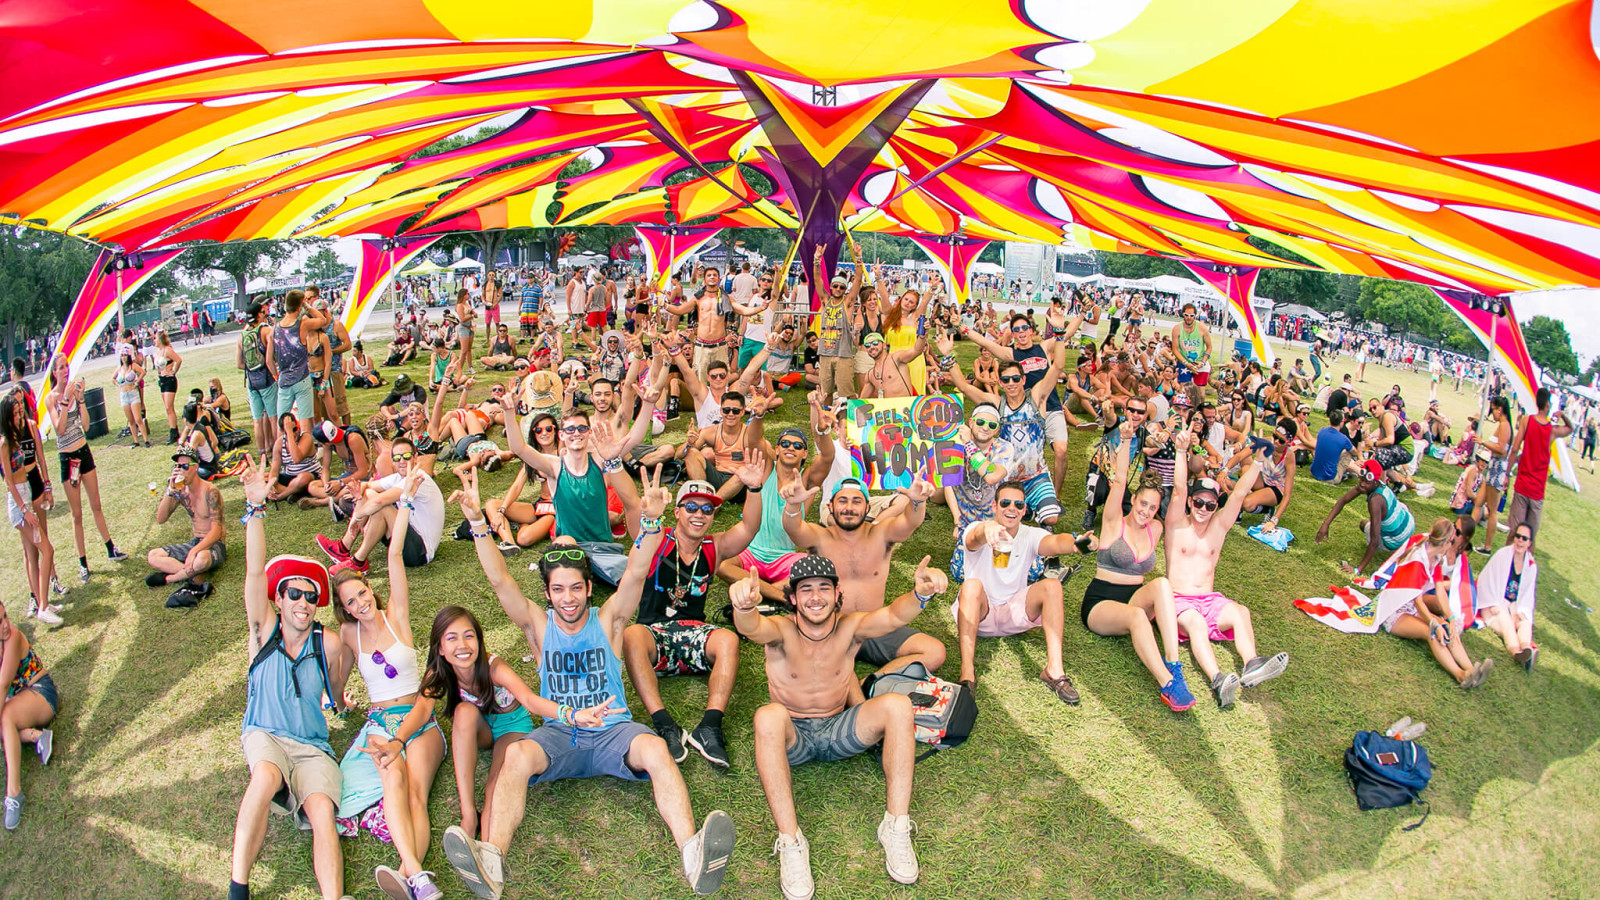 Shaded area with fans at Sunset Music Festival 2015